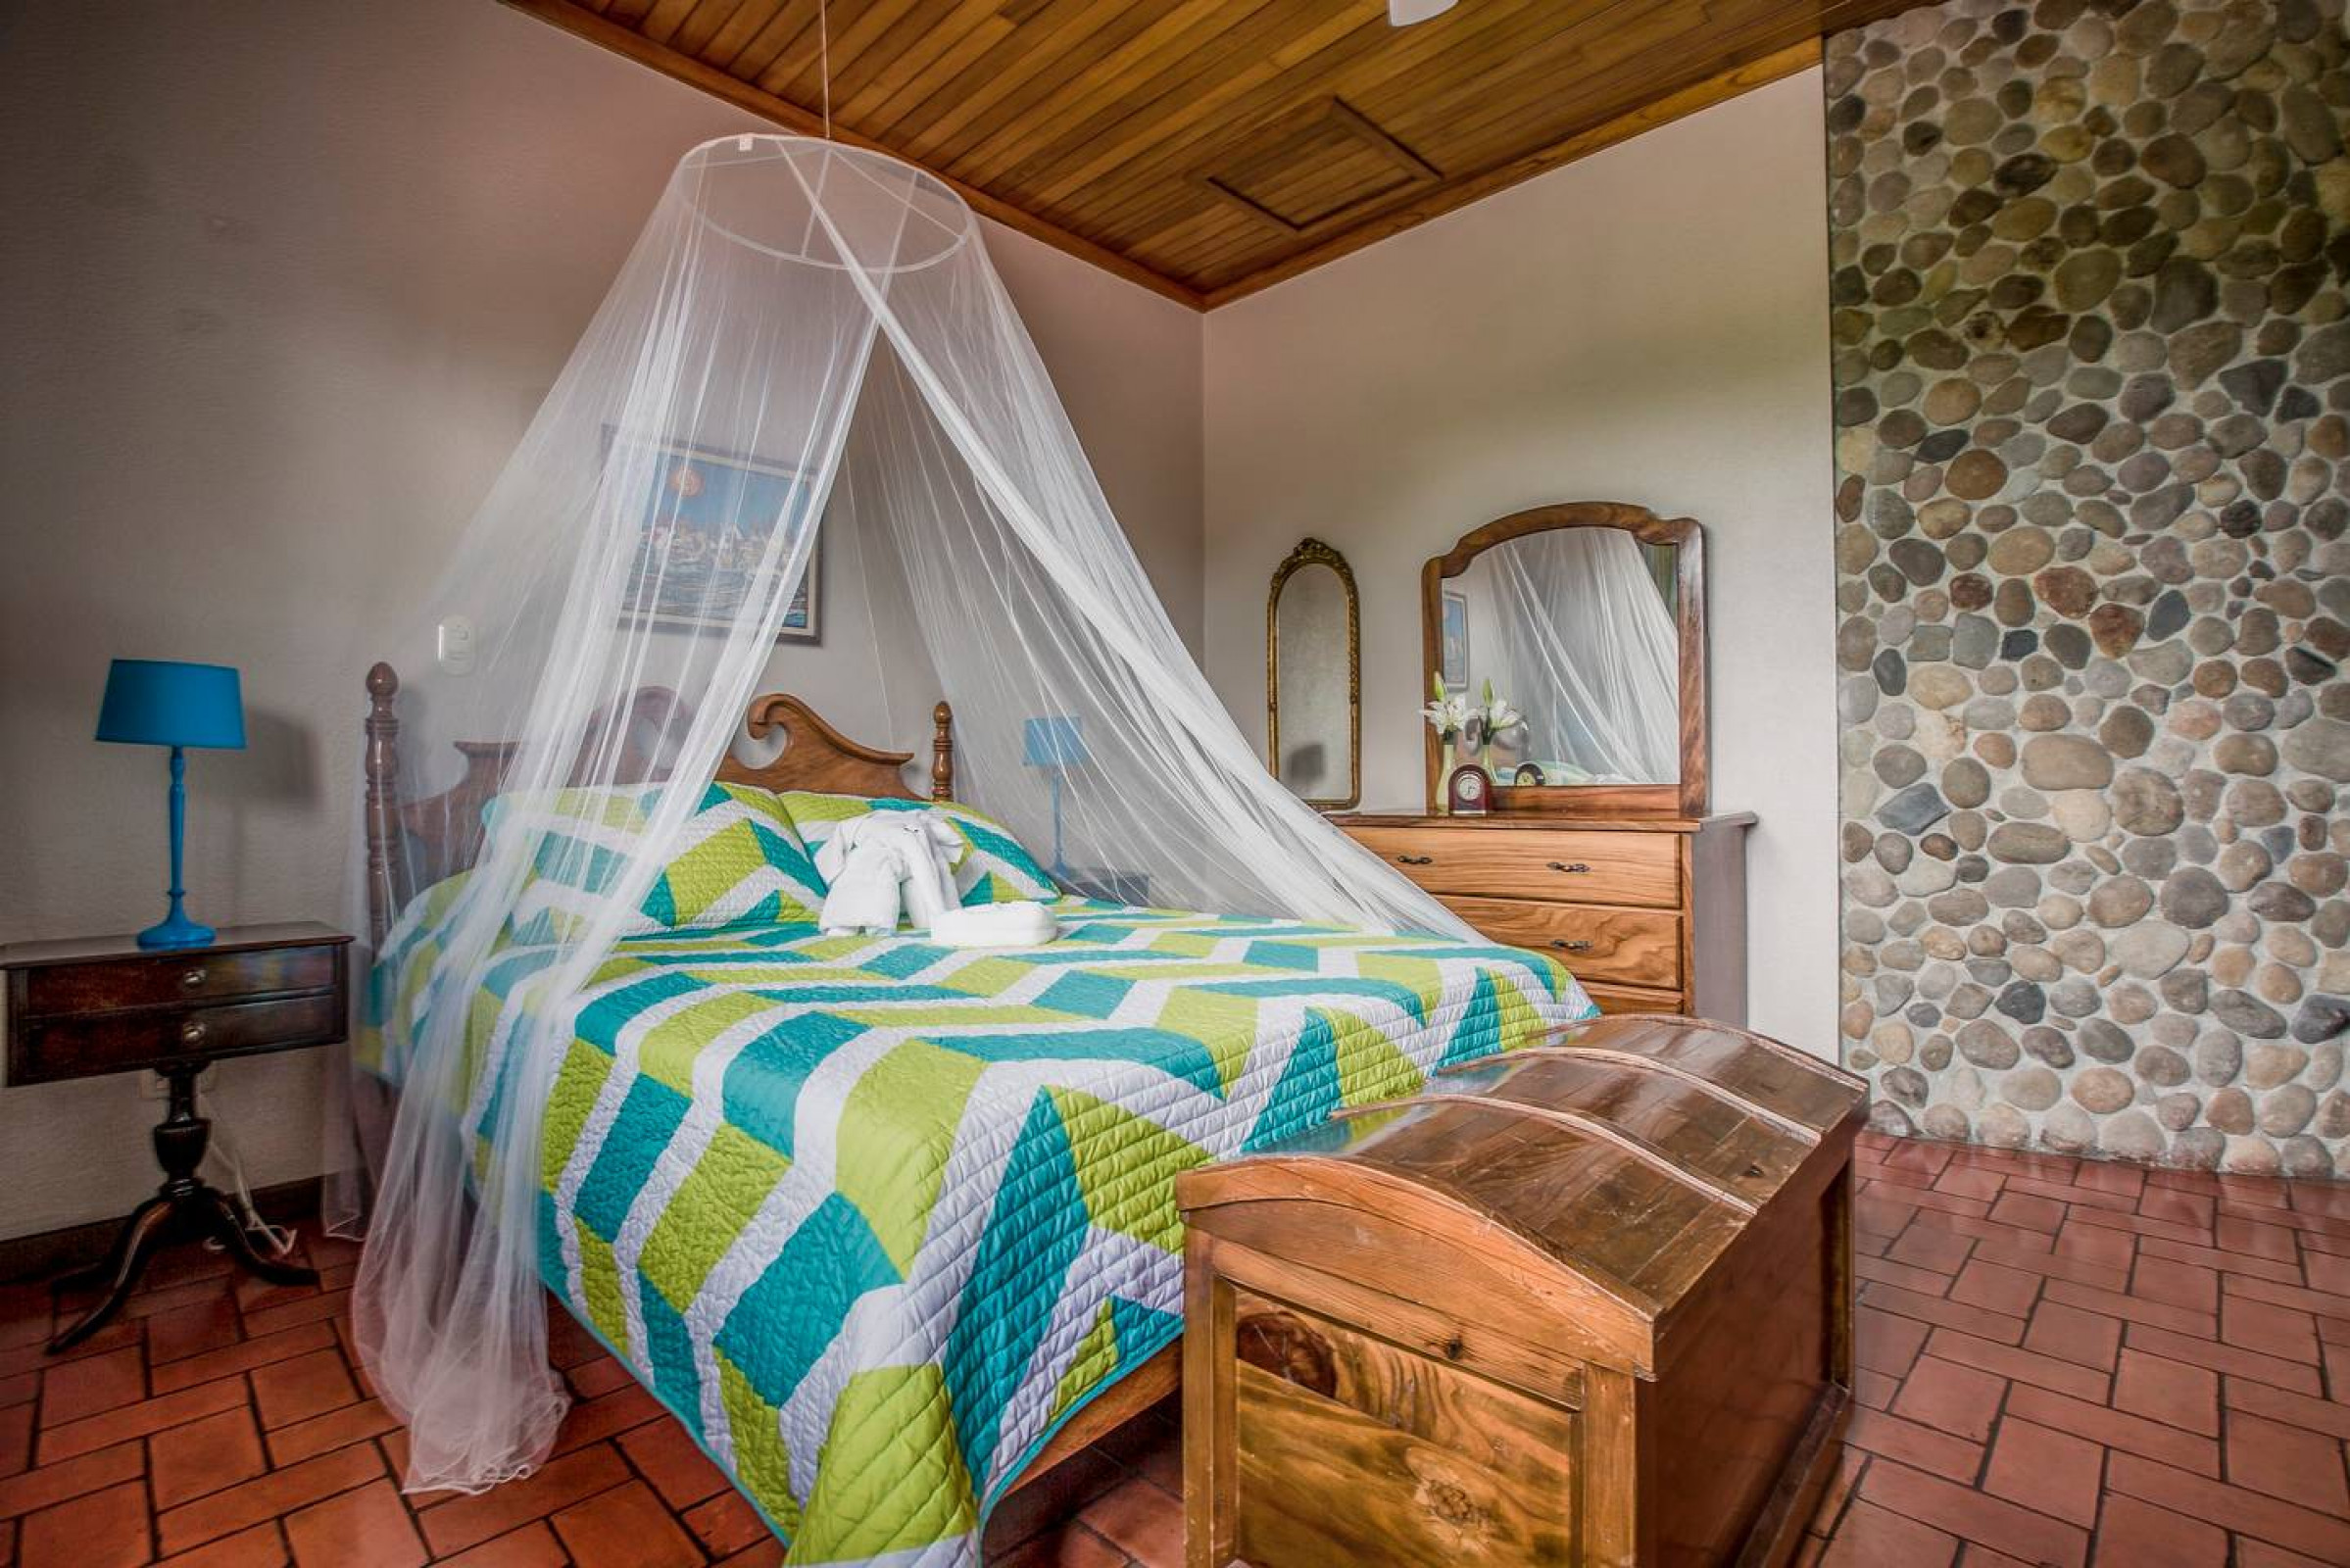 Nicely-styled rooms at this luxury AirBnB villa near La Fortuna.